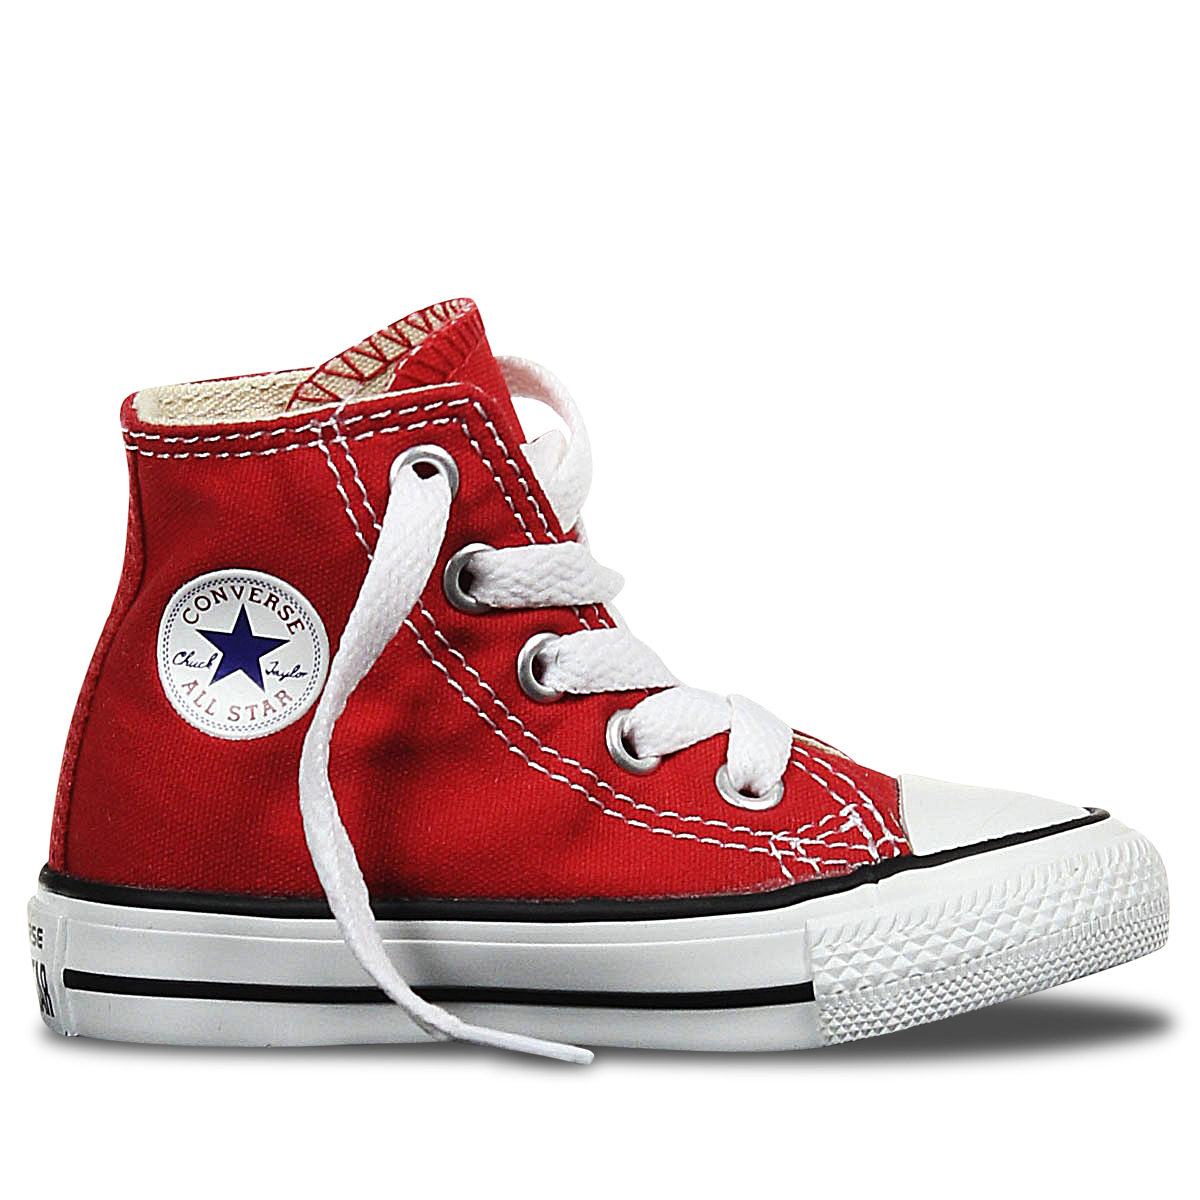 converse transparent red